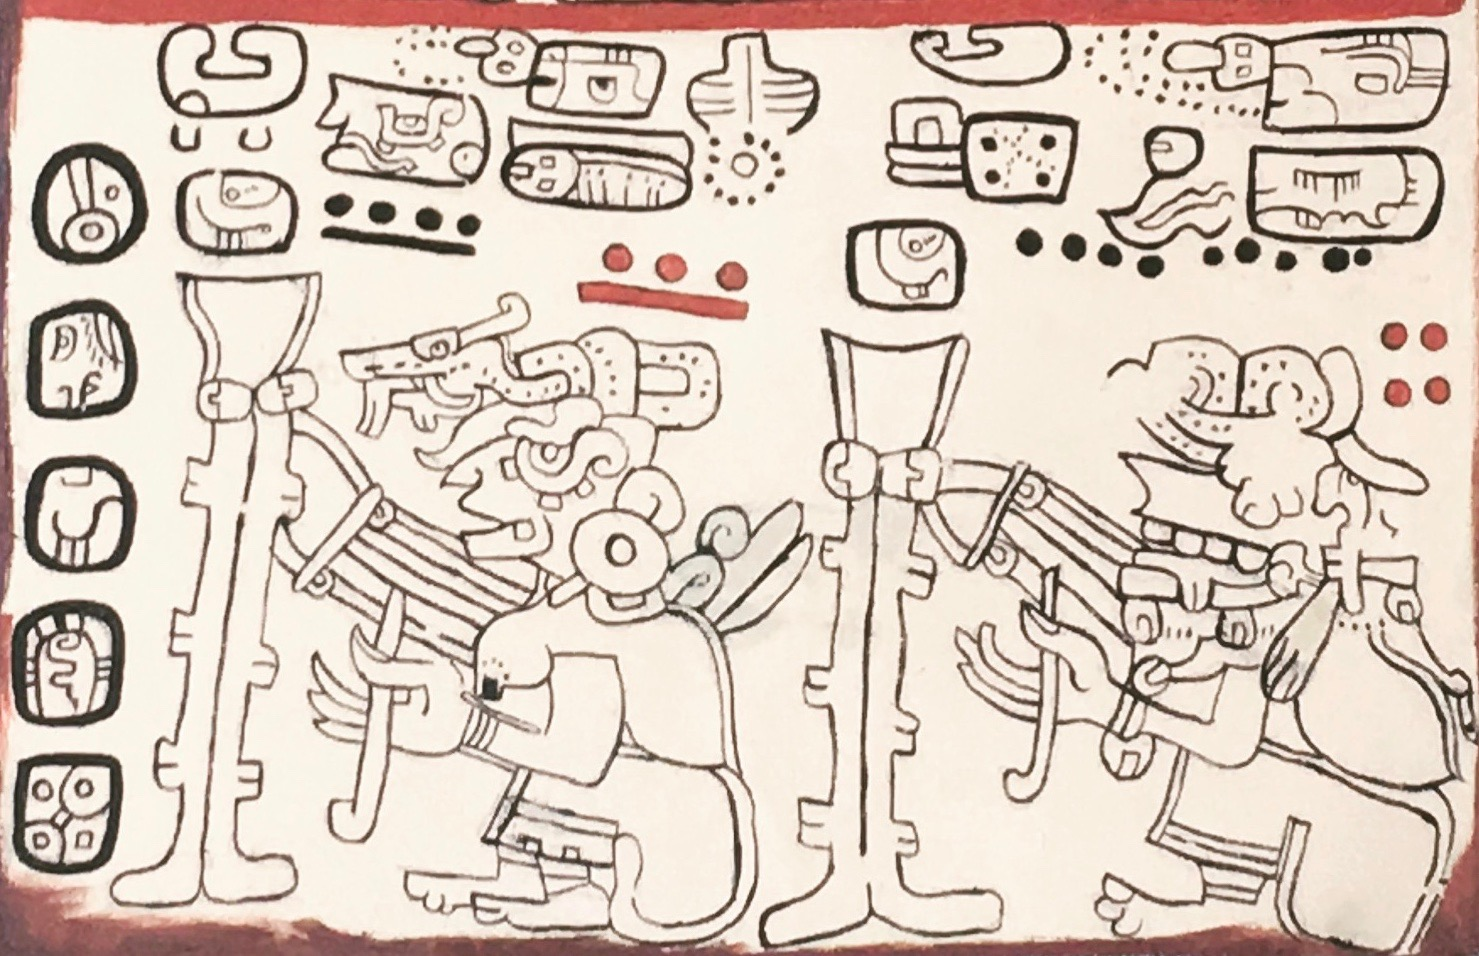 Hieroglyph of a female weaver on a backstrap loom found in the Mayan Codex, known as the  Madrid Codex .